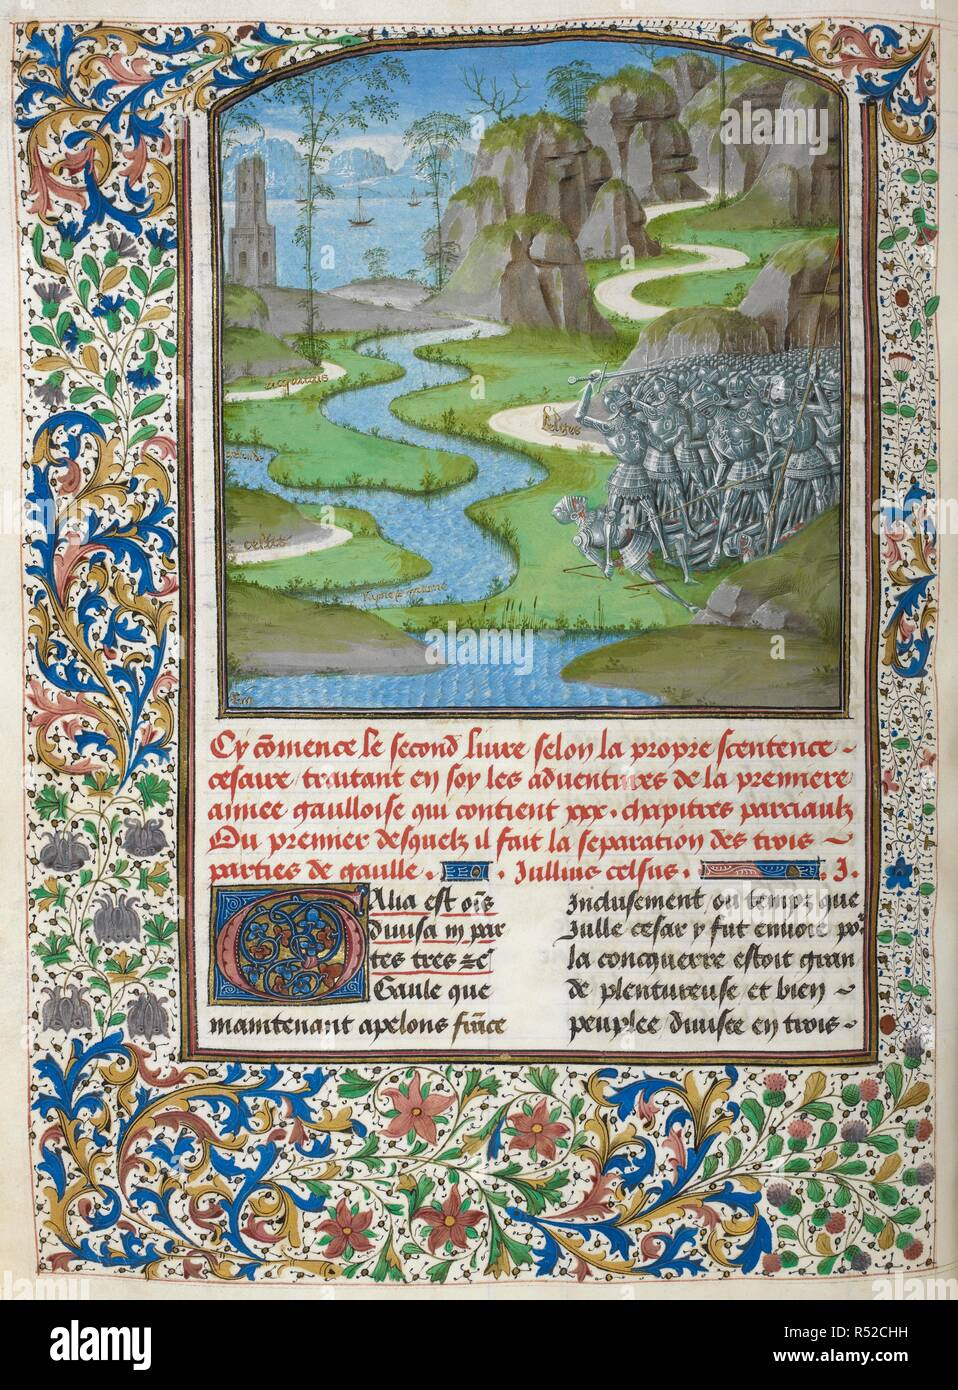 Caesar's army and the view of Gaul with rivers and lands bearing inscriptions: 'Belges', 'sayne et marne', 'Rin', 'Celtes', 'Geronde', 'acquitai[n]s' (Book 2); border of foliage and columbines. Caesar, translated by Jan Du Quesne (or Jean Duchesne), Bellum Gallicum ( Les commentaires de Cesar ). 1473-1476. Source: Royal 16 G. VIII, f.86v. Language: French. Author: JULIUS CAESAR. Du Quesne, Jehan. Master of the London Wavrin. - Stock Image